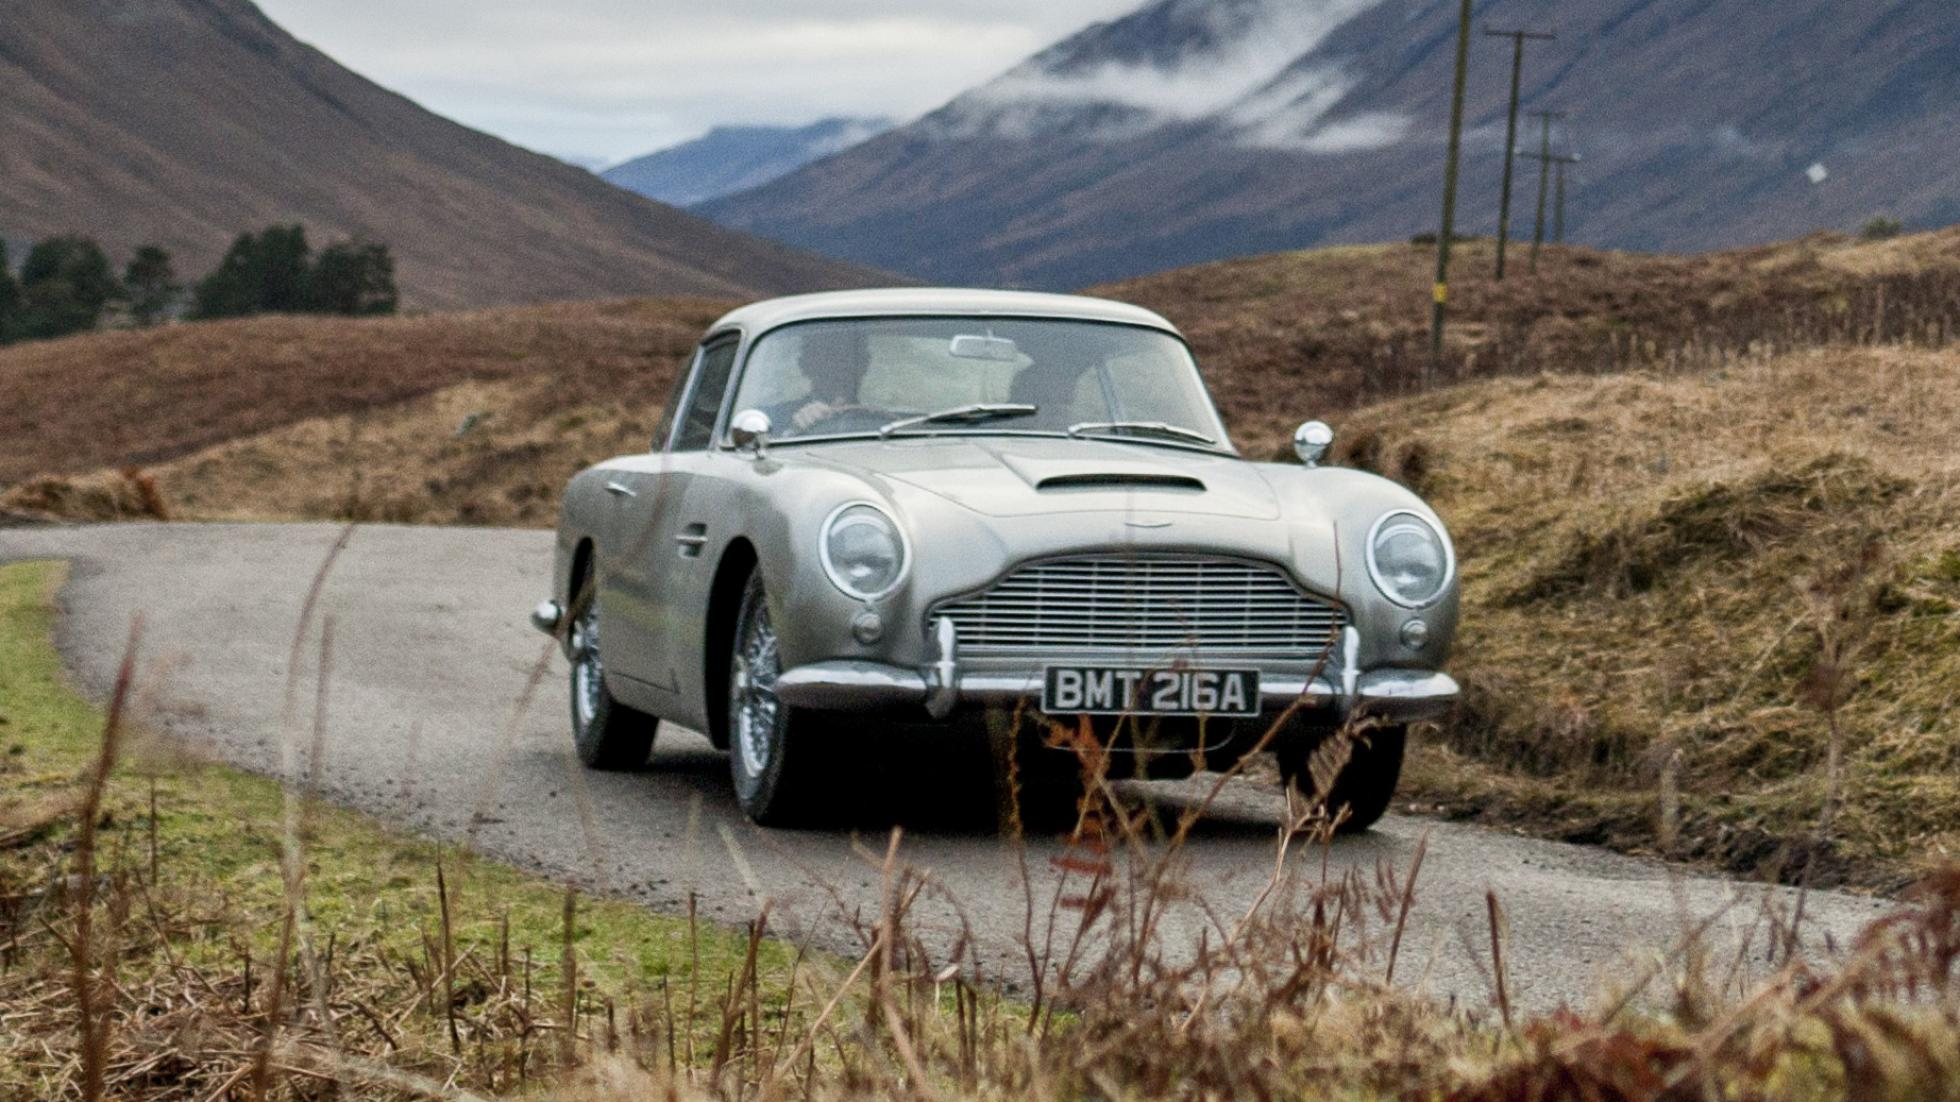 Aston Martin has partnered with James Bond producers to build Goldfinger replica DB5s – Each will cost $3.5 mil (gadgets included)